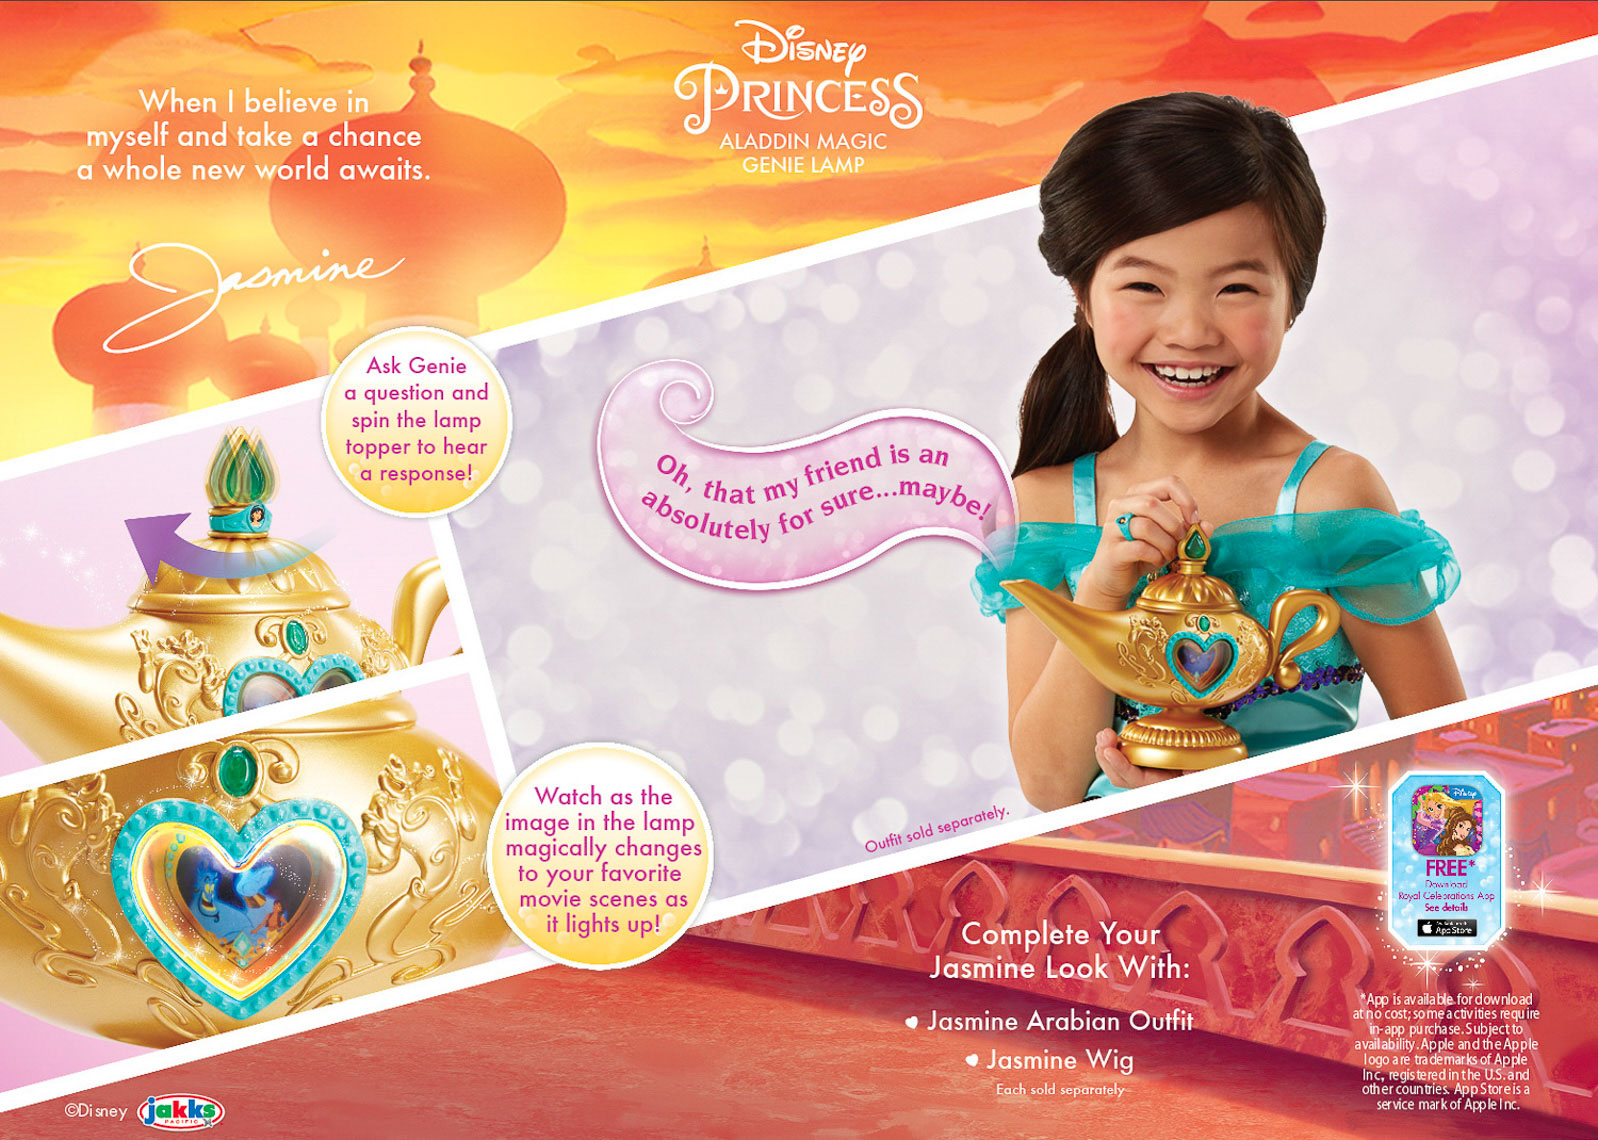 DCP 88515_PB_magic lamp_AC_S16_R2